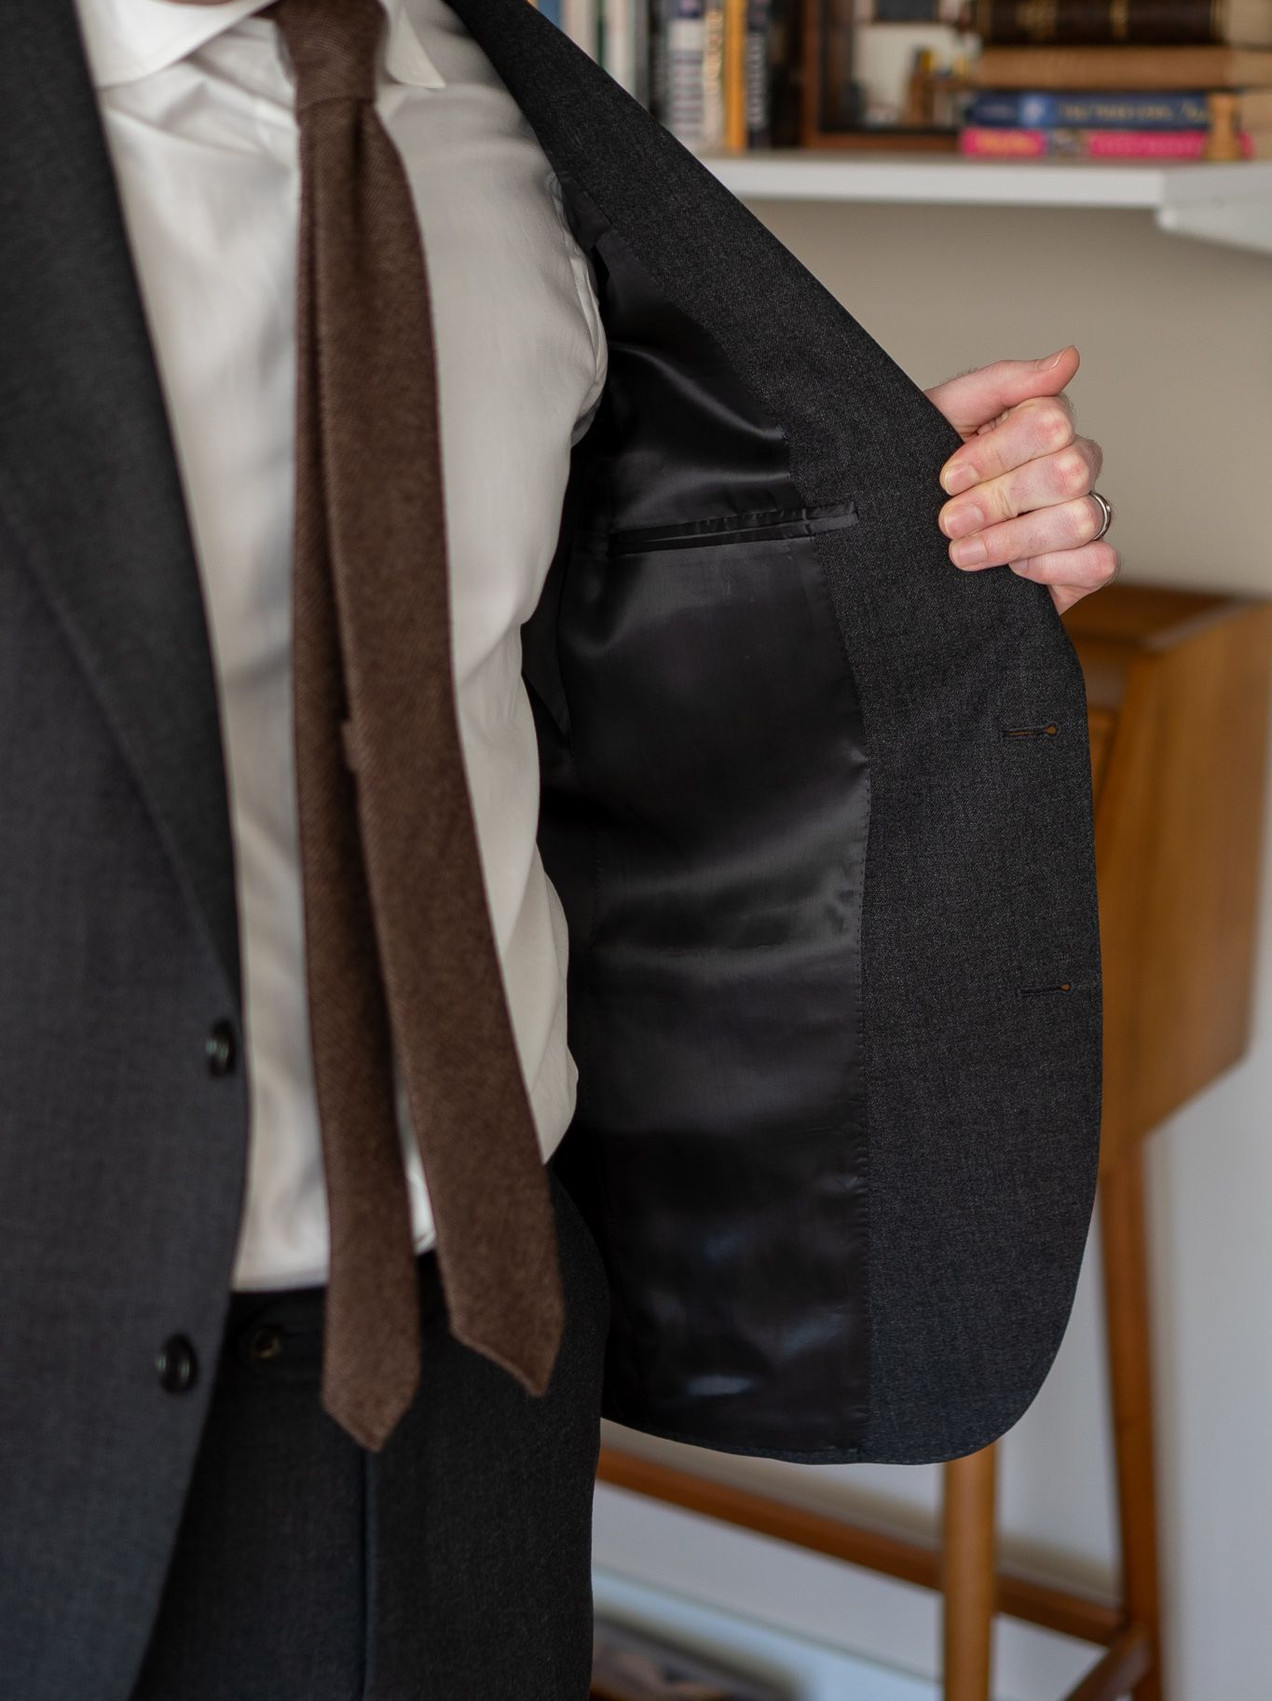 The lining of the Cavour winter hightwist suit